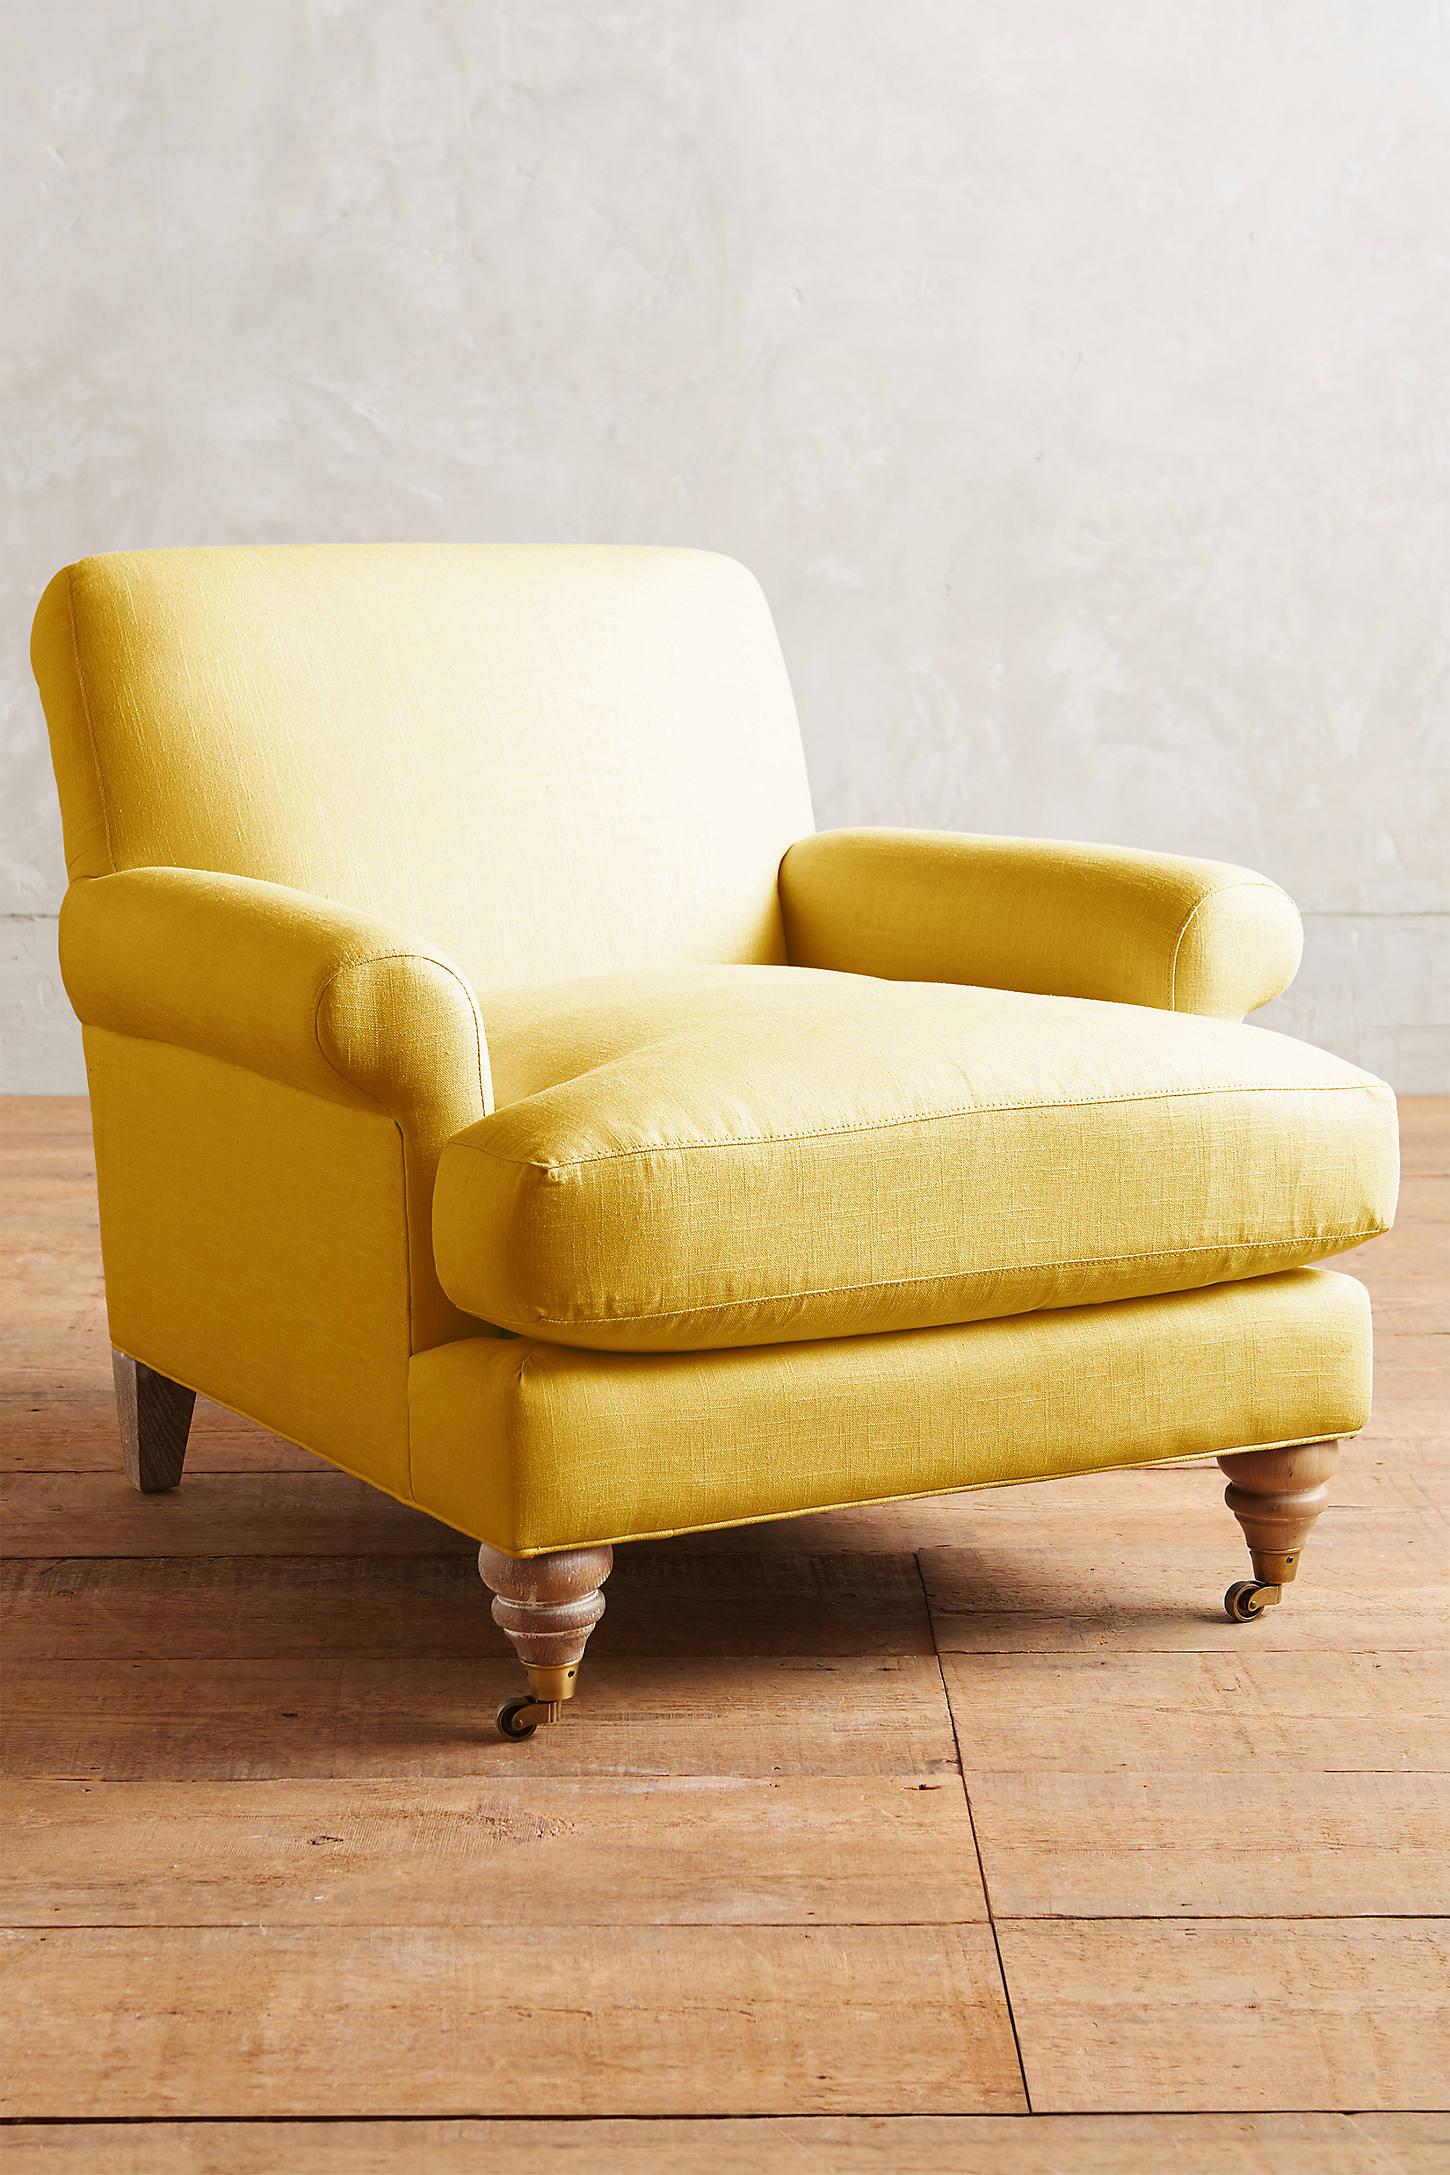 Linen Willoughby Chair, Wilcox